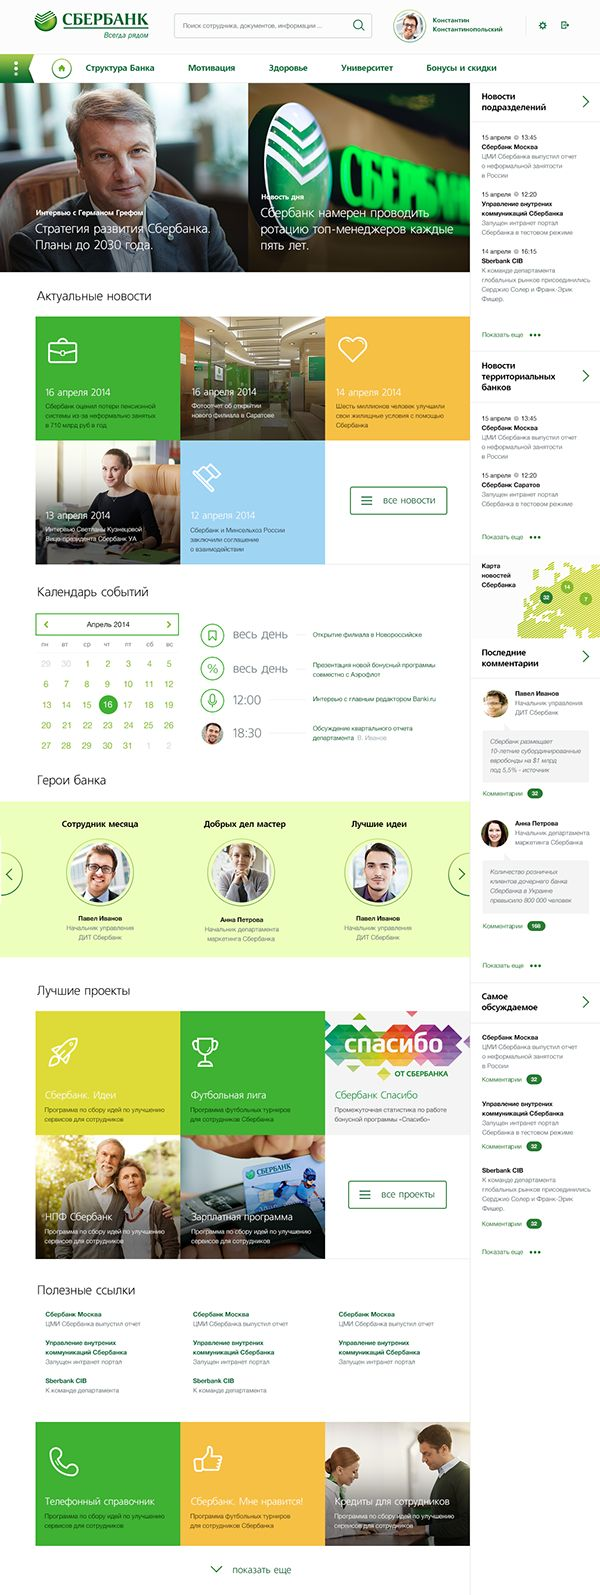 left column, middle module / Sberbank Corporate Intranet on Behance